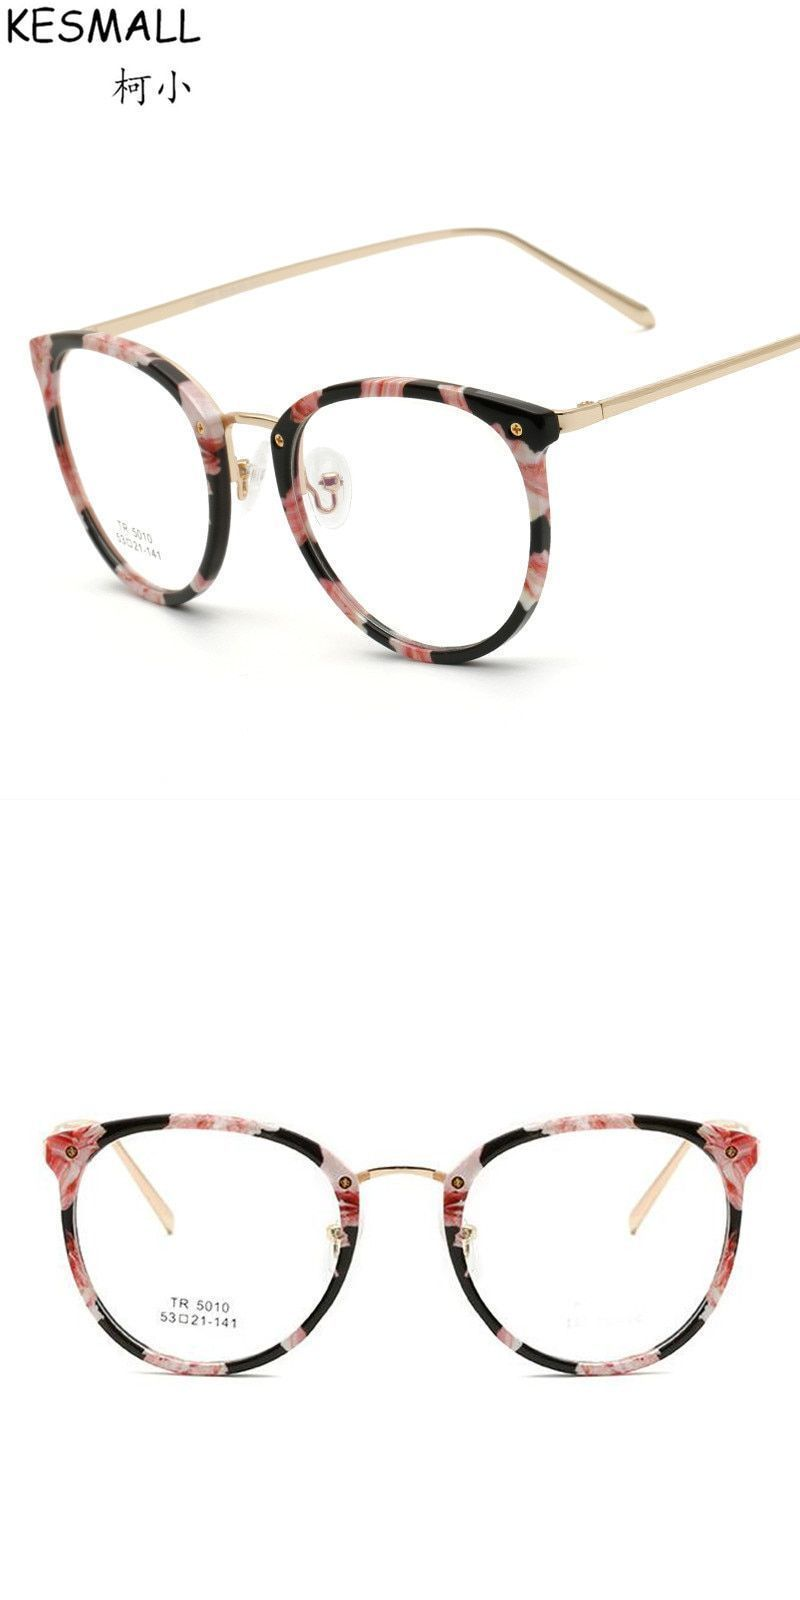 5ad85e09c0347 Fashion optical glasses frame women light tr90 eyeglasses frames flower  print lady oversized glasses frame oculos